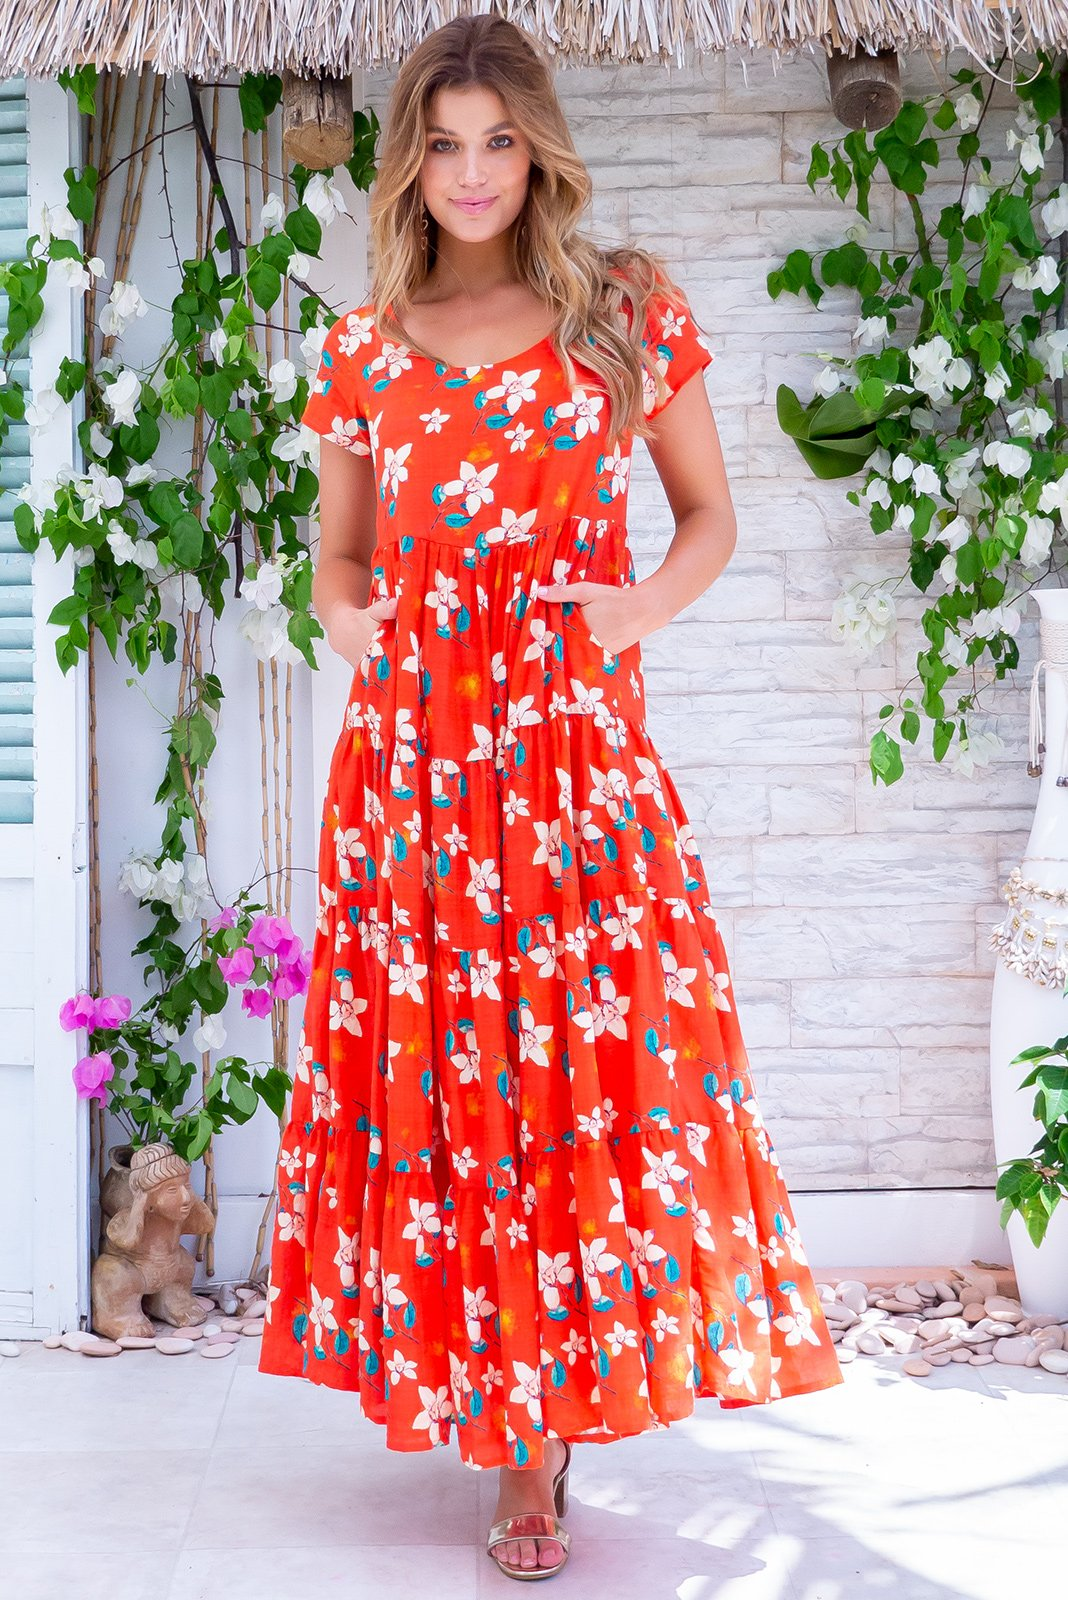 Lucky Lulu Really Red Maxi Dress is a must-have summer dress made in woven 100% cotton featuring  bright orange/red base with a fresh cream and green floral print, scooped neckline, cap sleeves, side pockets and wide tiered skirt.